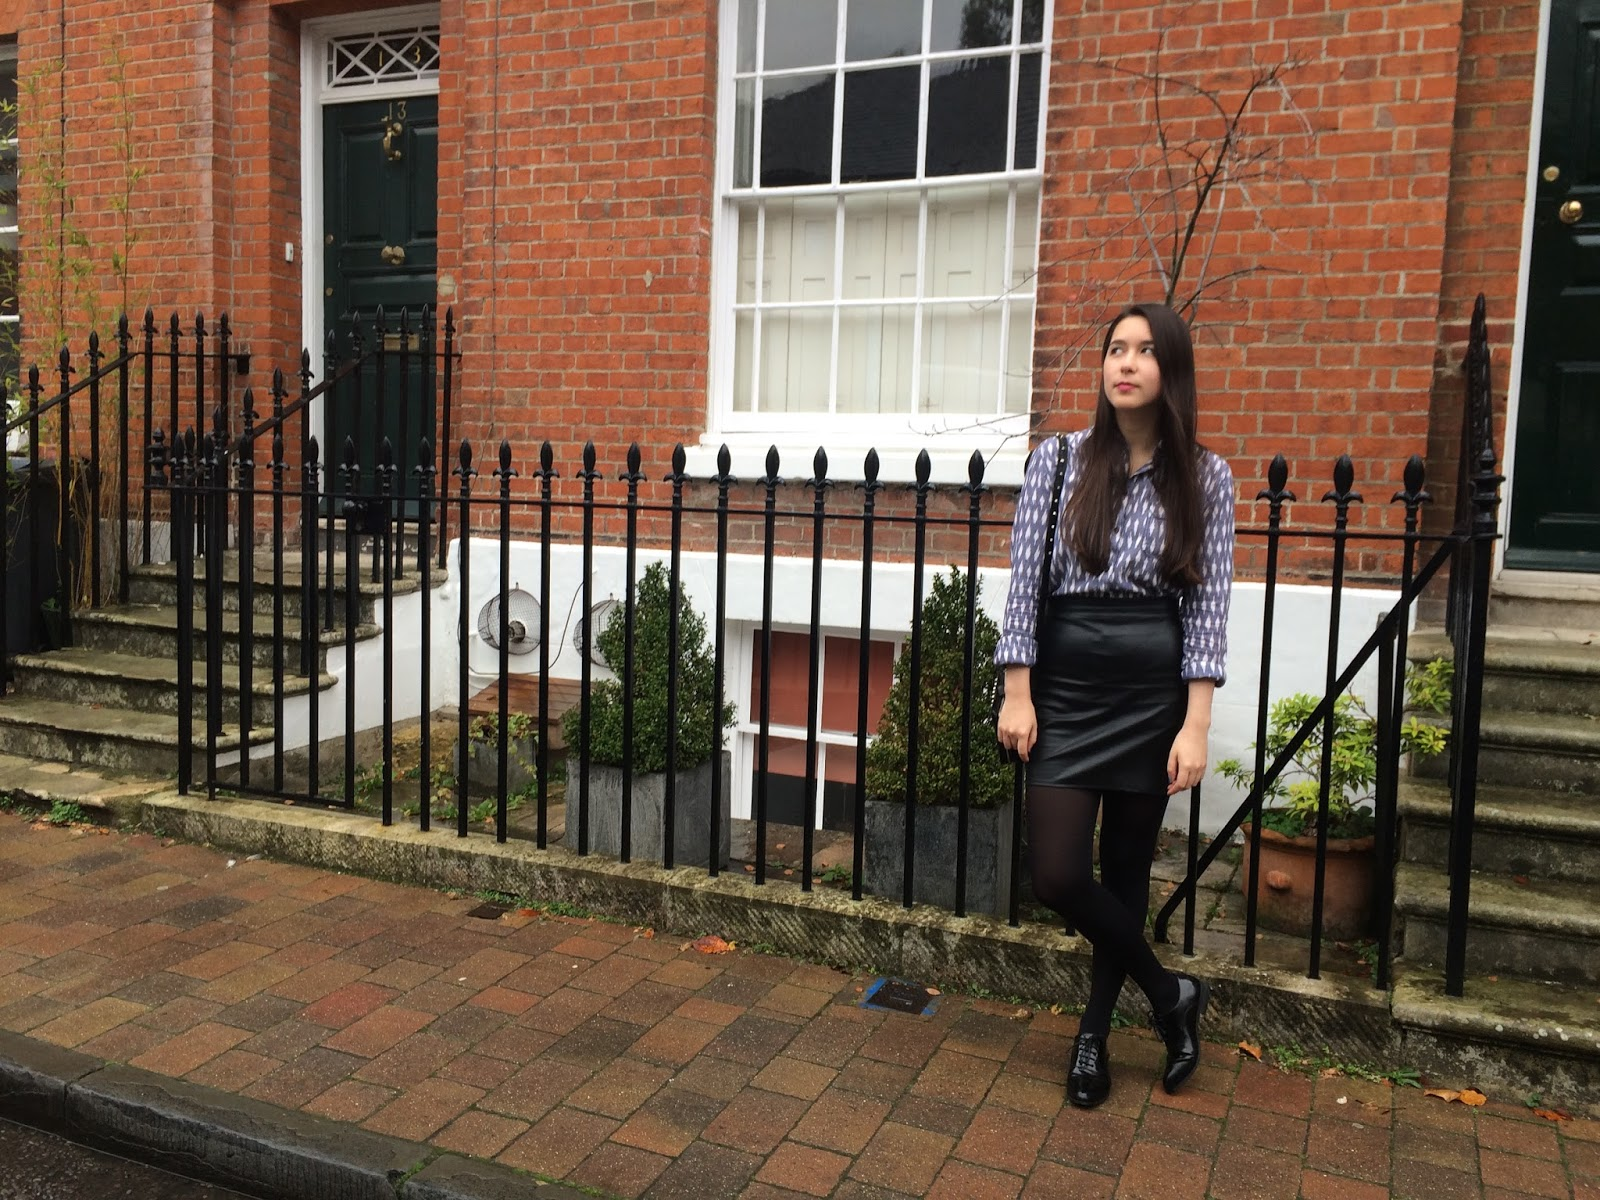 OOTD, outfit post, blogger, fashion, street style, skirt, brogues, box bag, black